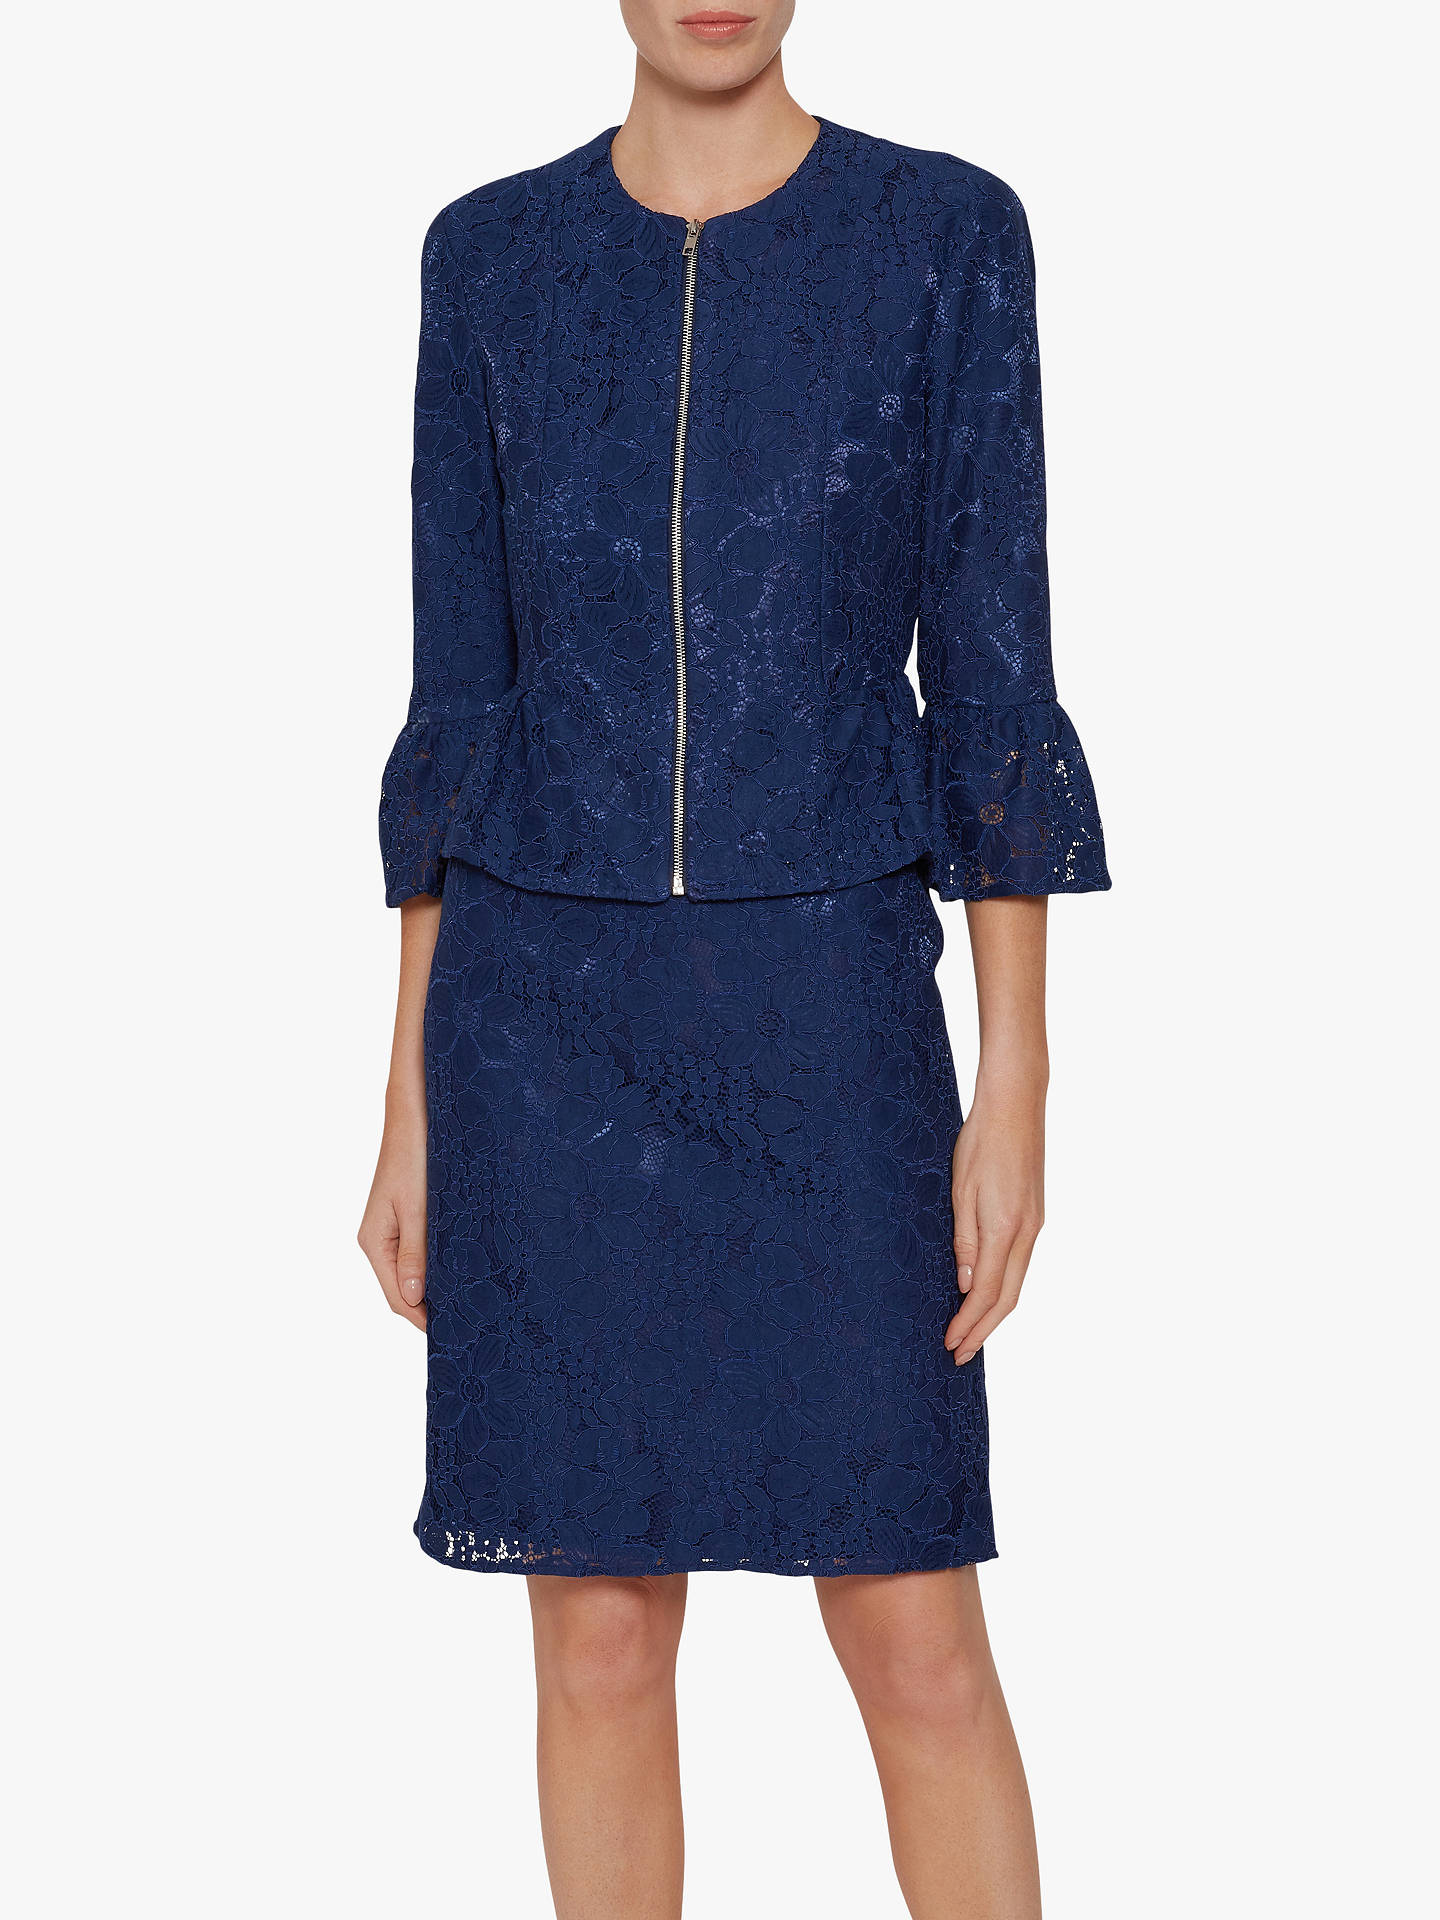 Buy Gina Bacconi Mariana Lace Dress, Navy, 18 Online at johnlewis.com